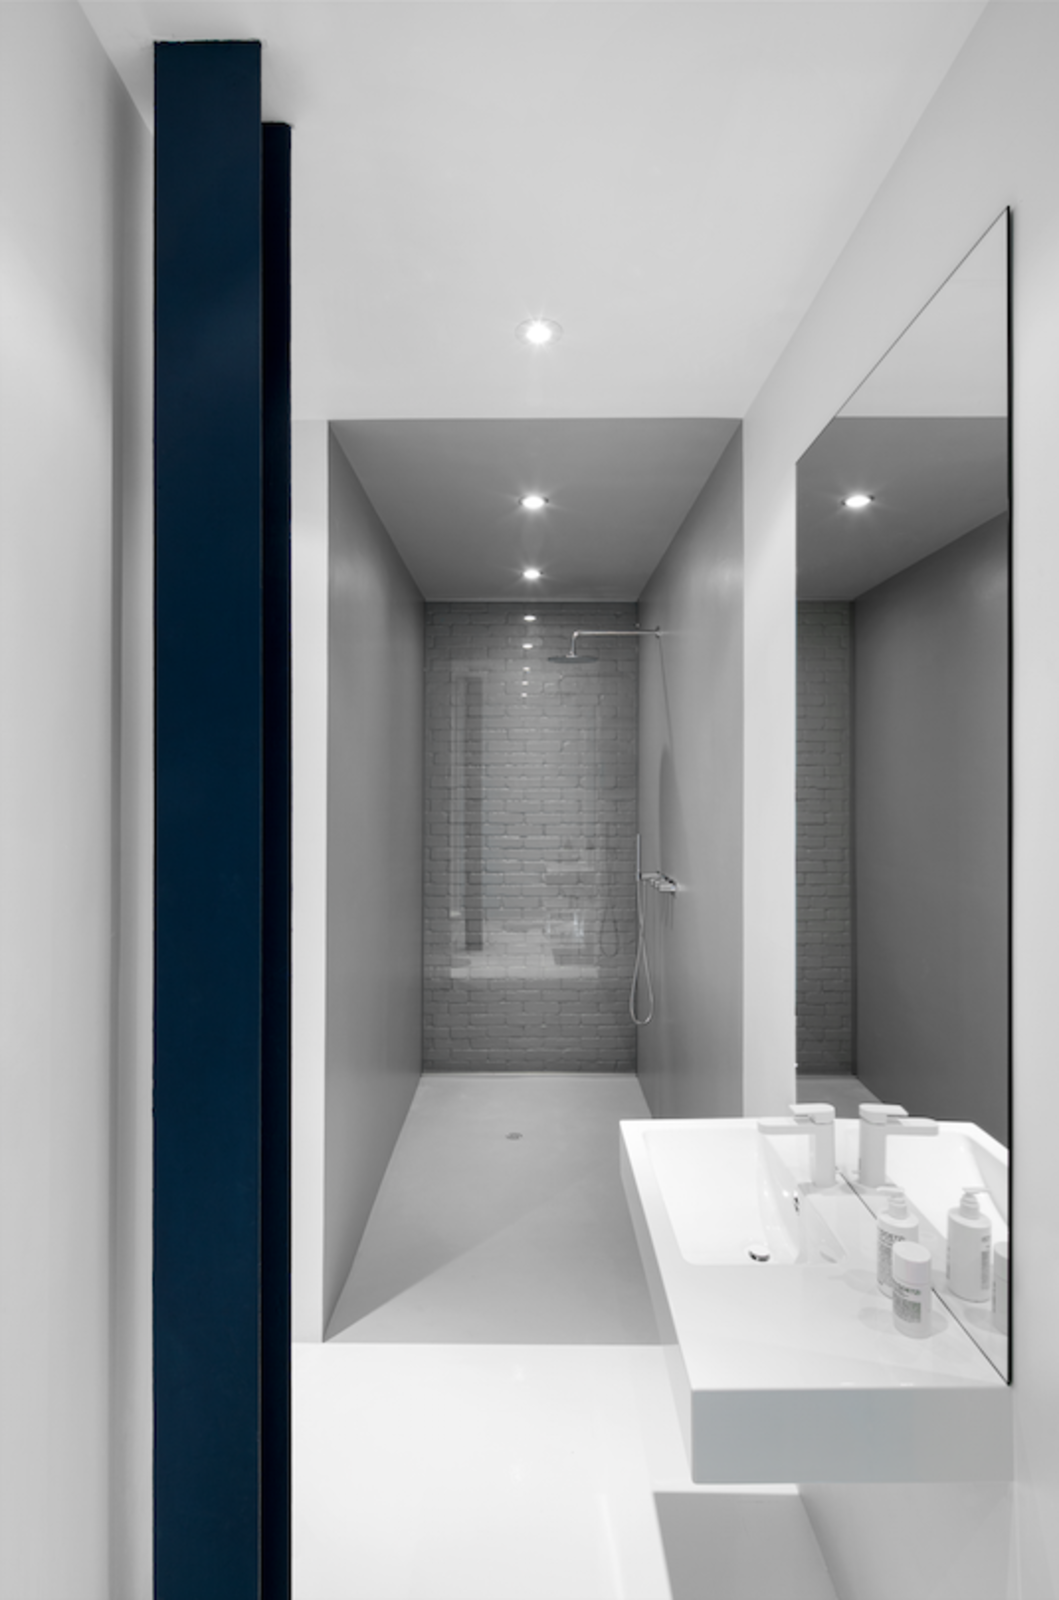 The bathroom contains white epoxy flooring, while the Cabano Bath shower is lined in gray epoxy.  Luminous Modern Apartment in an Industrial Montreal Building by Allie Weiss